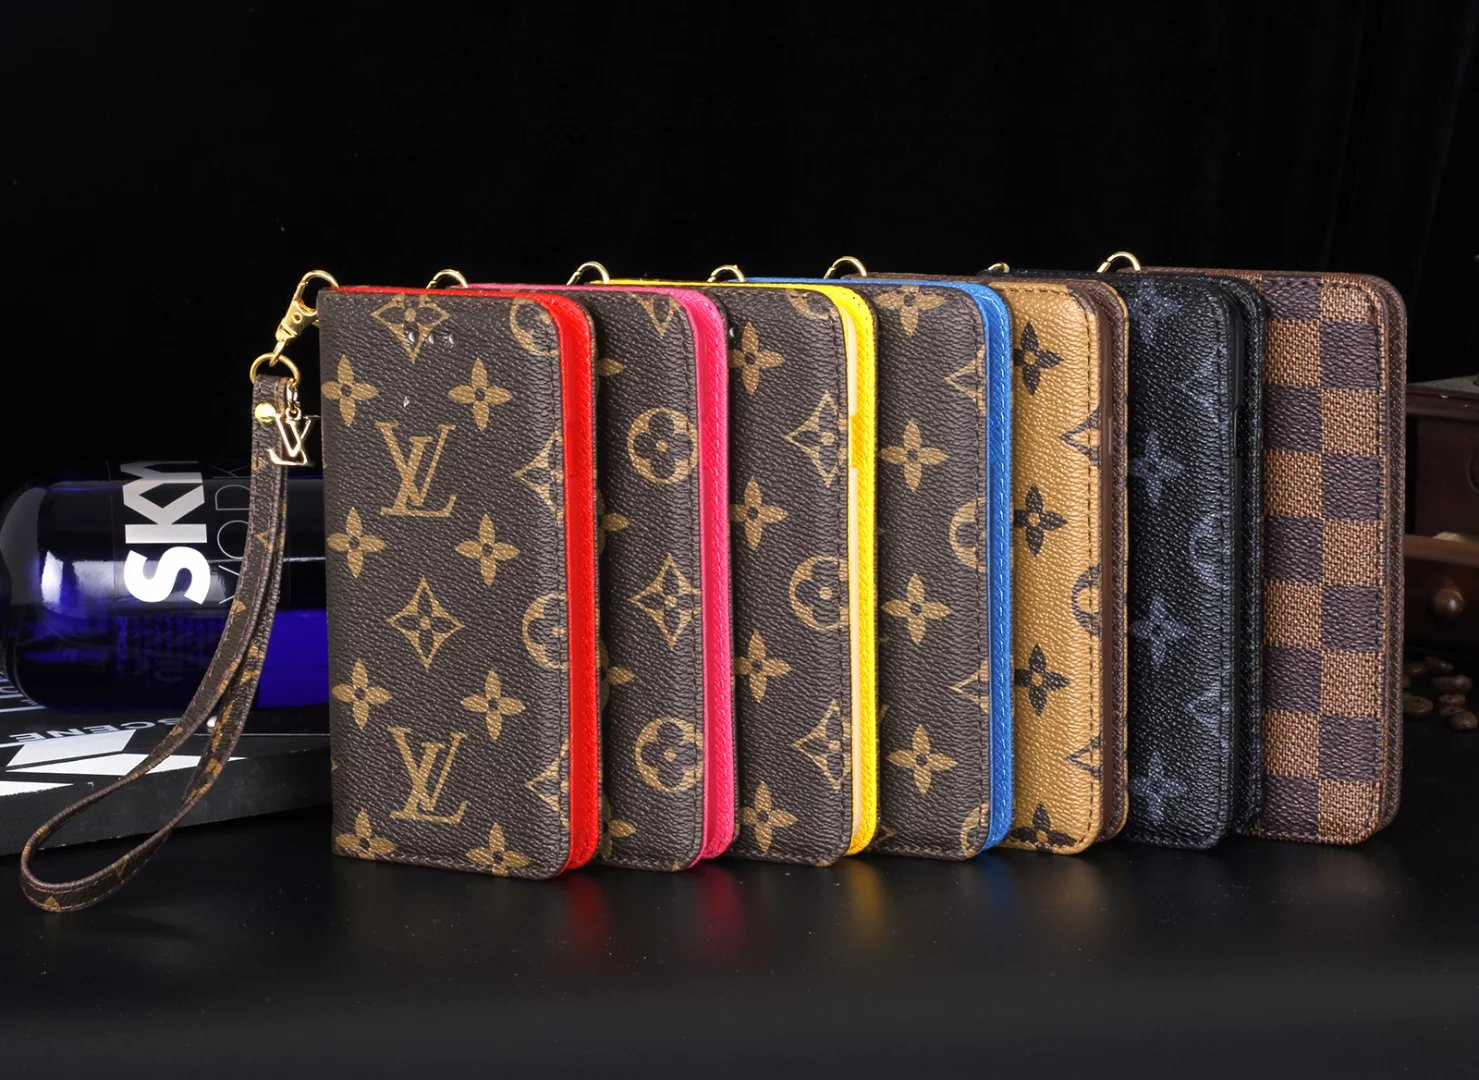 iphone case selbst gestalten günstig iphone hülle bedrucken lassen Louis Vuitton iphone6s plus hülle iphone 6s Plus designer hülle apple lederhülle iphone 6s Plus iphone 6s Plus s handyhülle neue iphone hülle ipad hülle design iphone 6 test